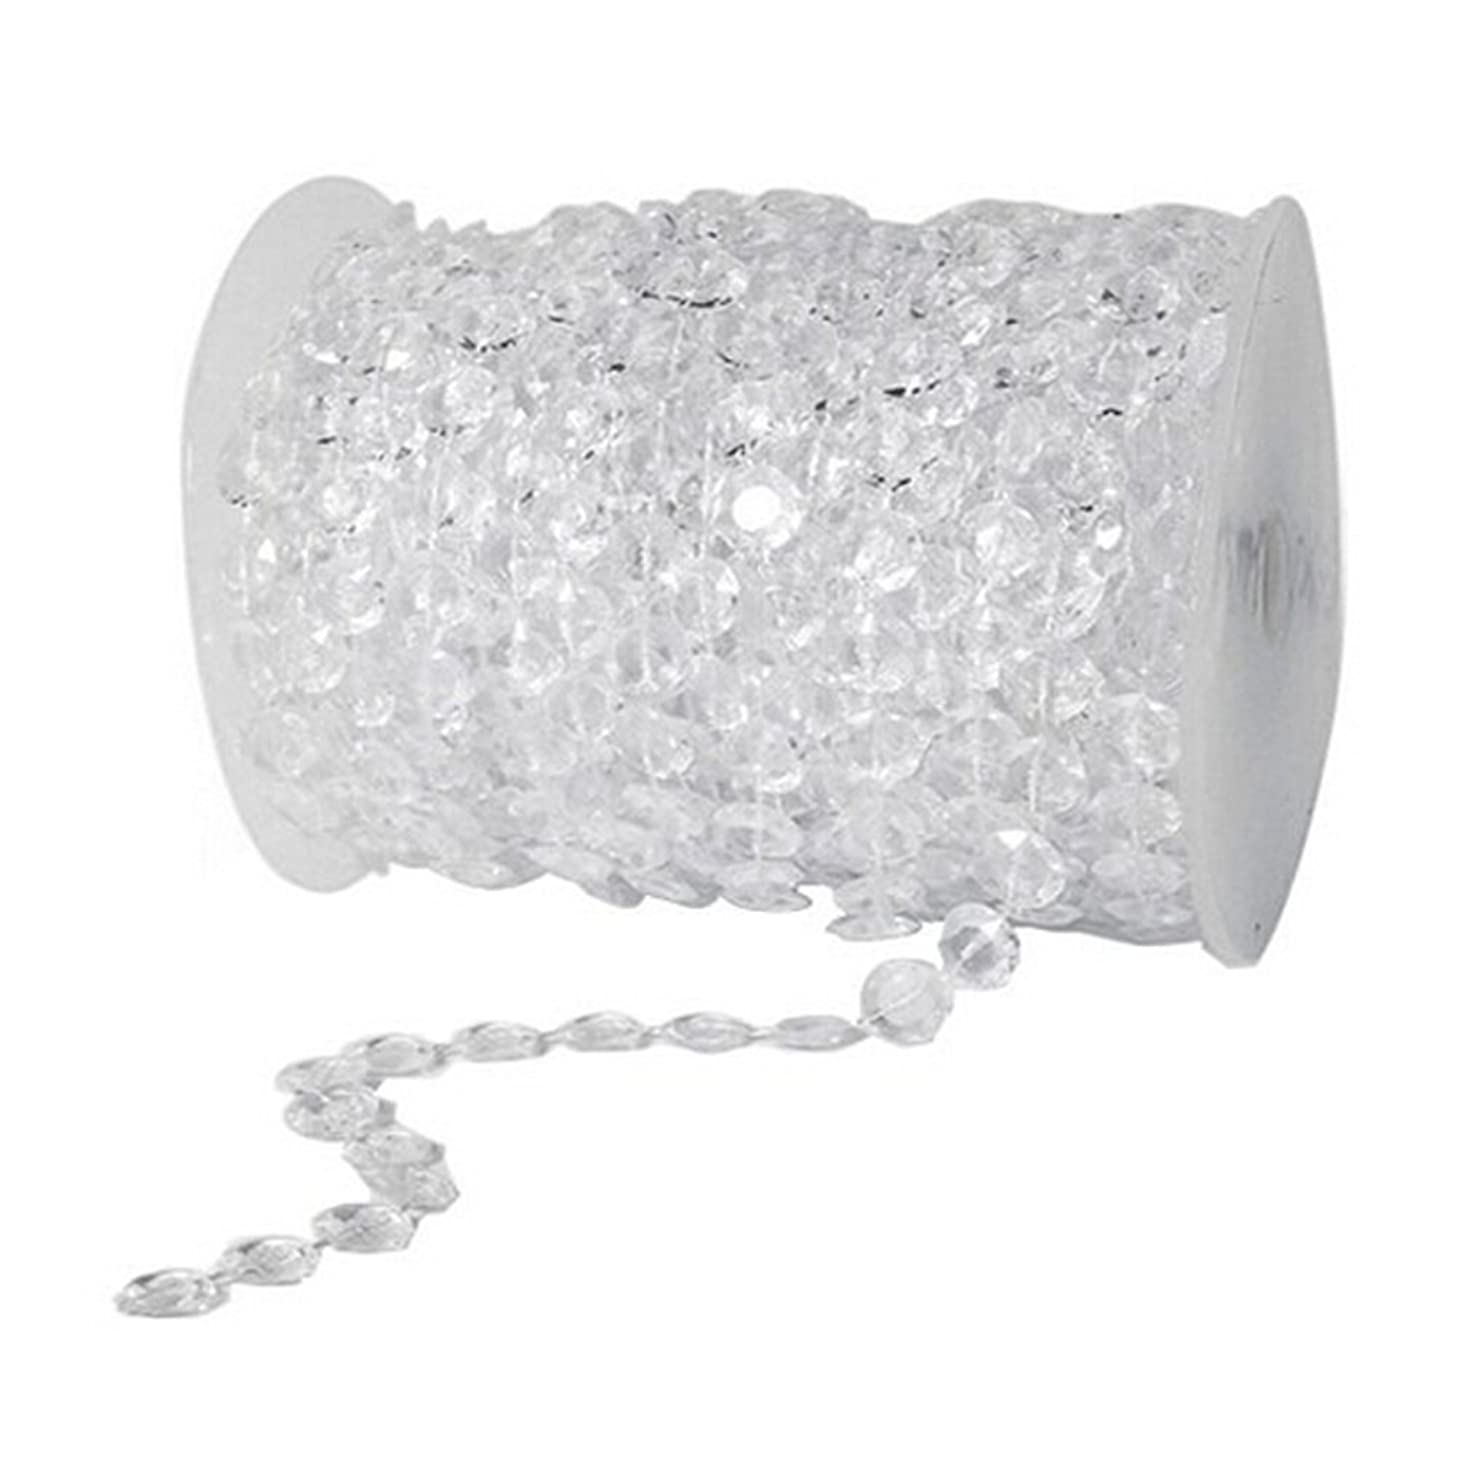 Equal Sign 99 ft Clear Crystal Like Beads by The roll for Flowers Wedding Party Decoration (White)